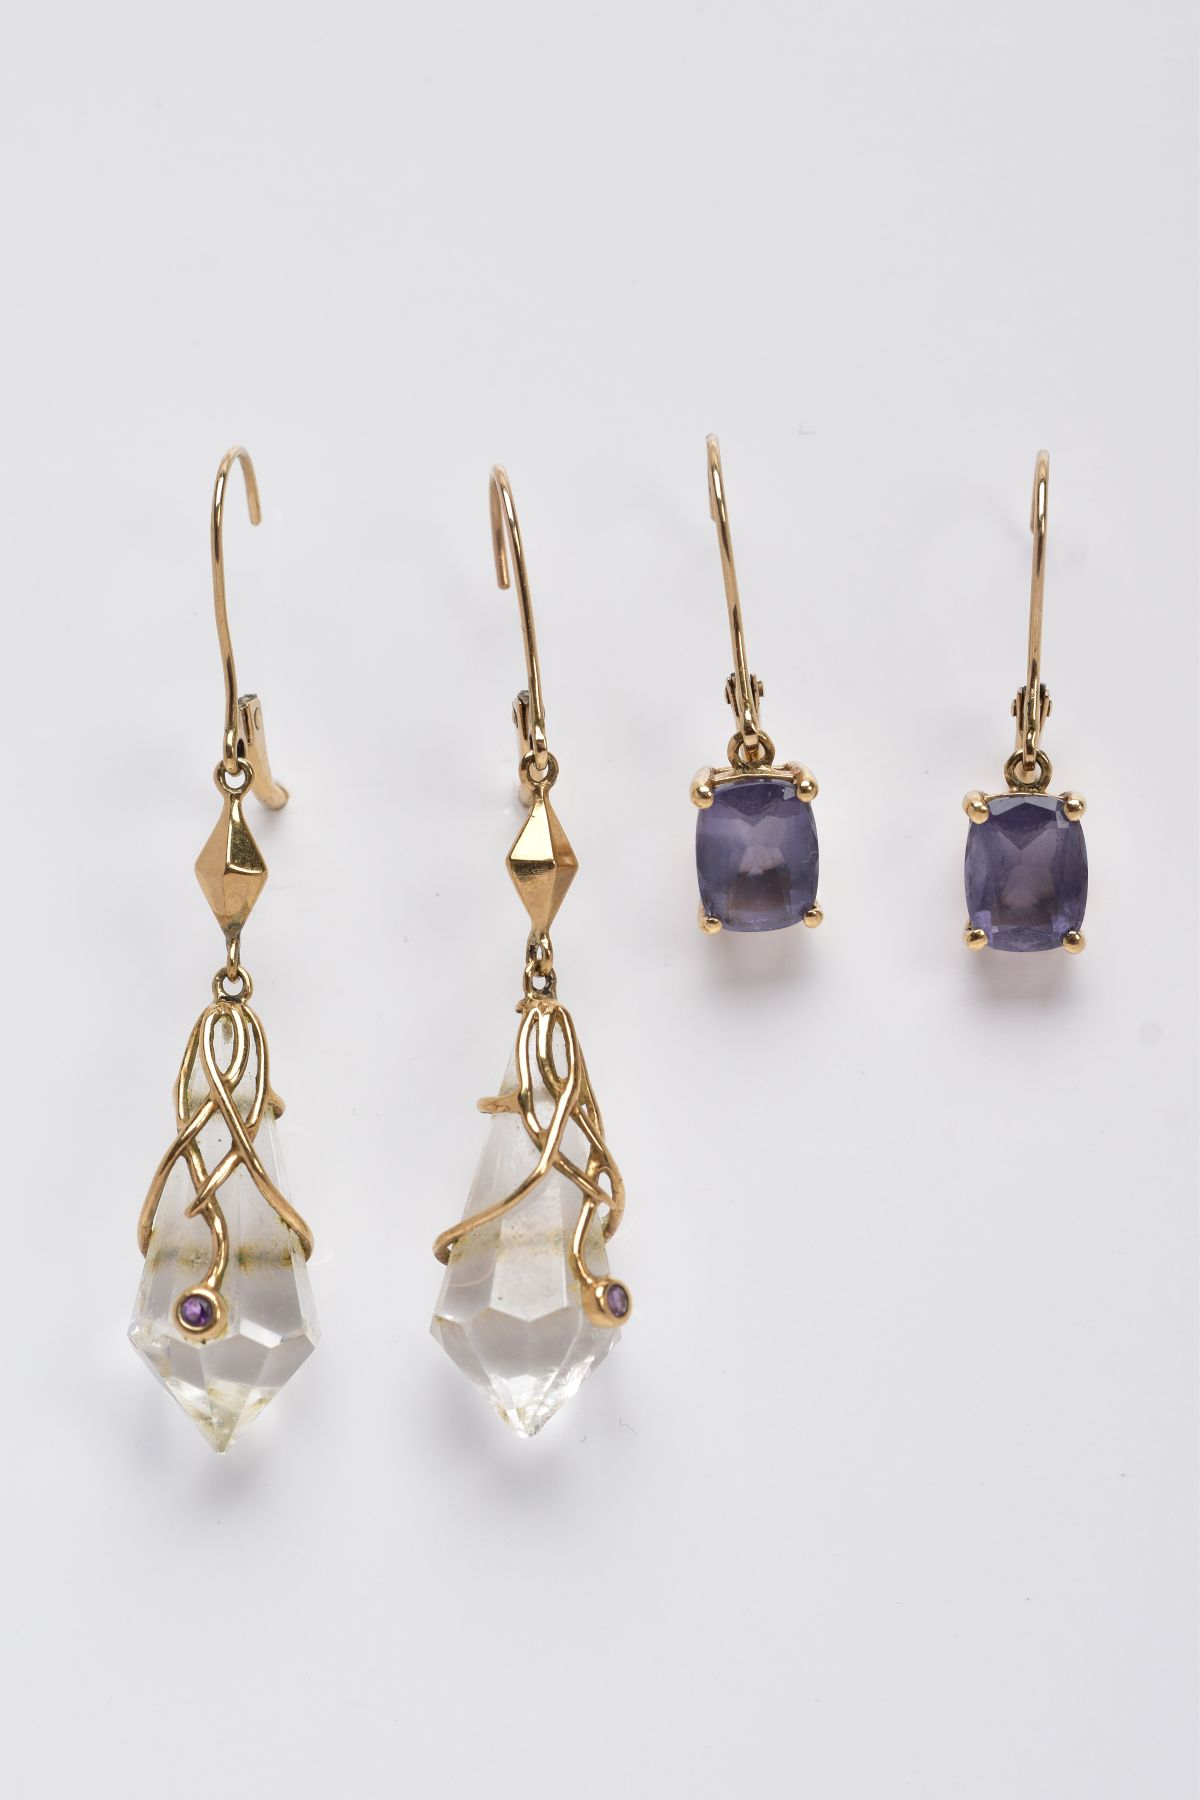 TWO PAIRS OF YELLOW METAL GEMSET DROP EARRINGS, the first pair suspending claw set, oval cut